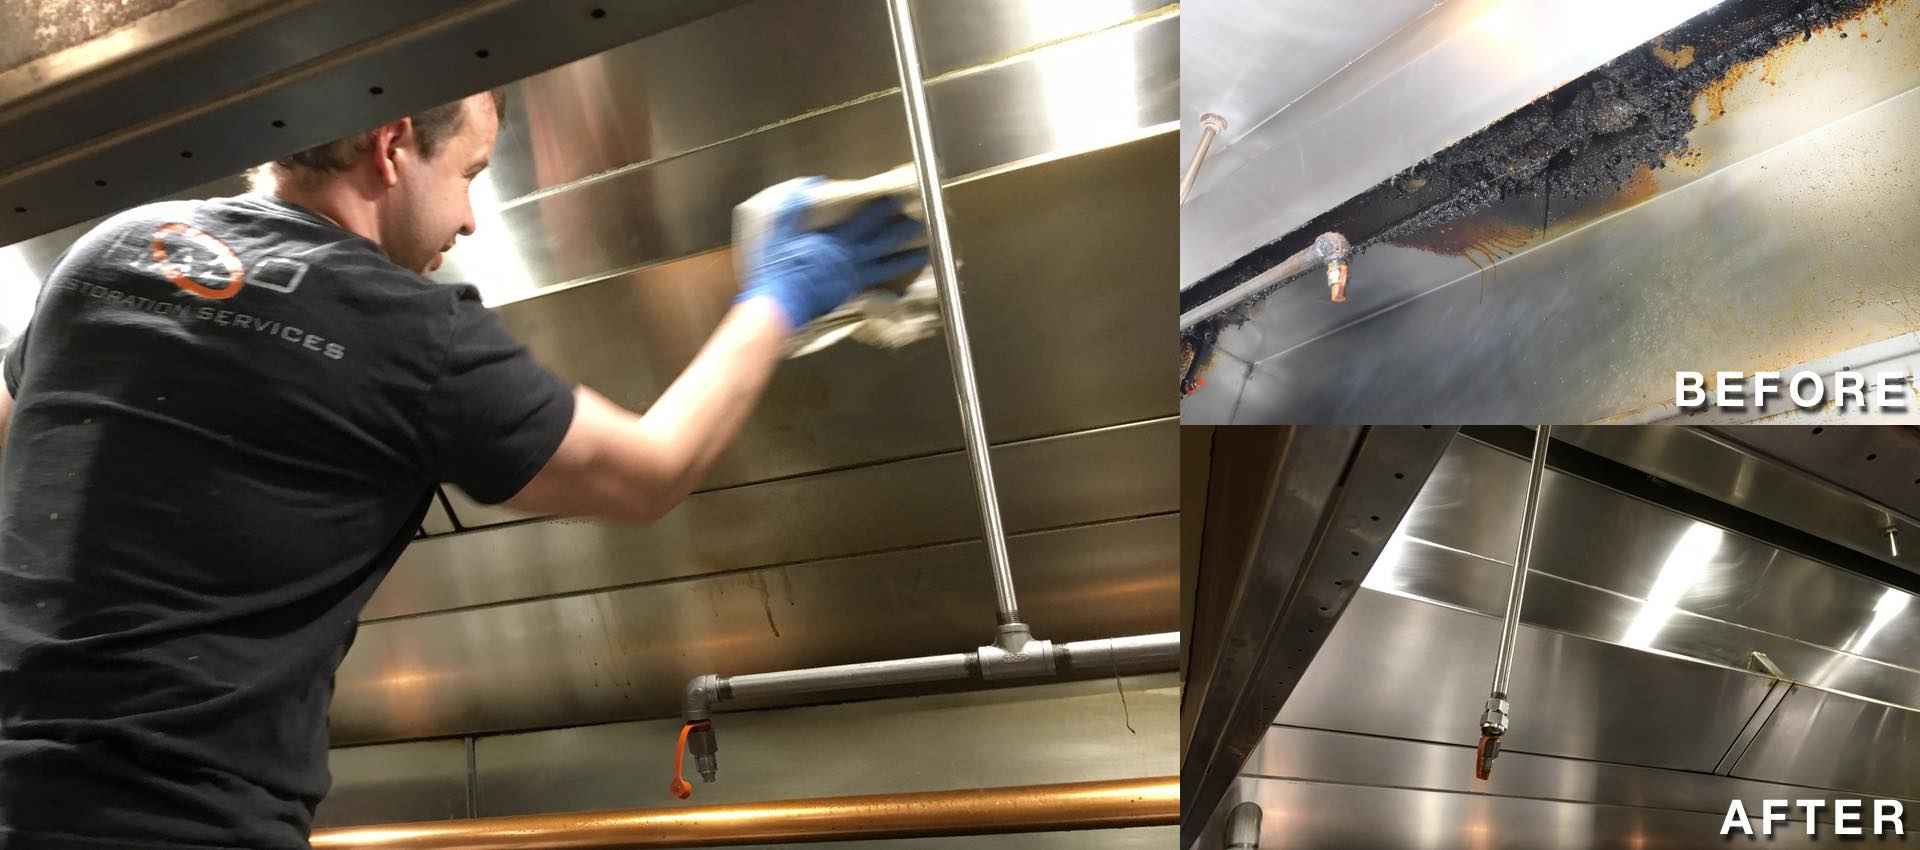 Lovely Cleaning A Commercial Kitchen Exhaust Hood System In Dallas, Texas